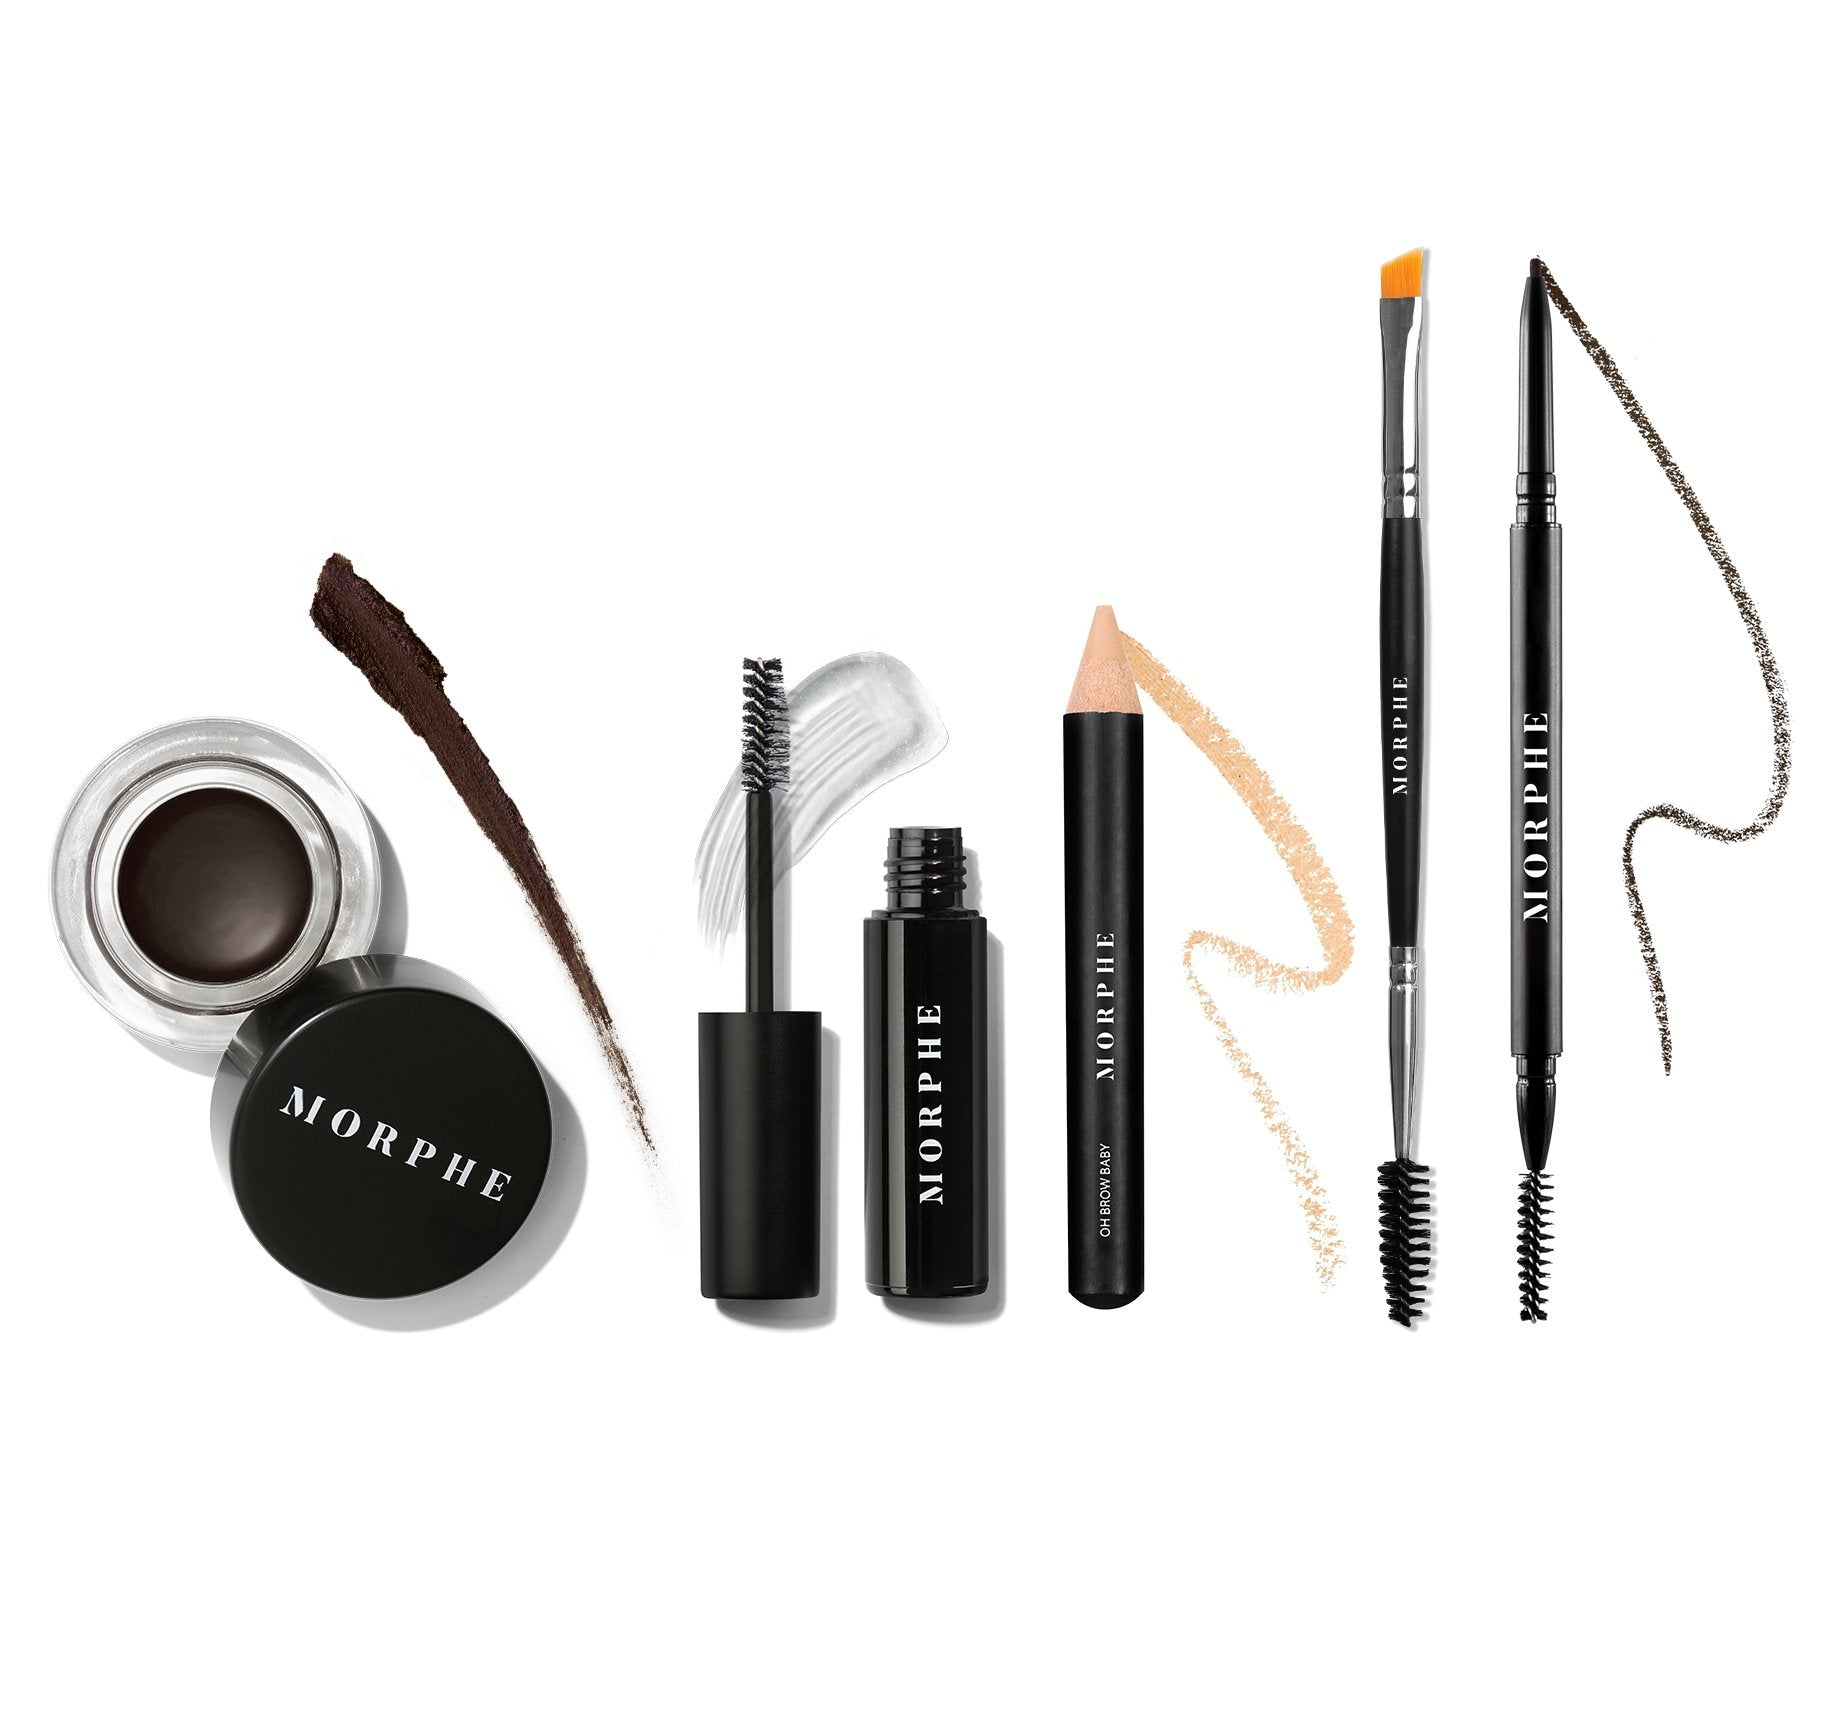 ARCH OBSESSIONS BROW KIT - CHOCOLATE MOUSSE